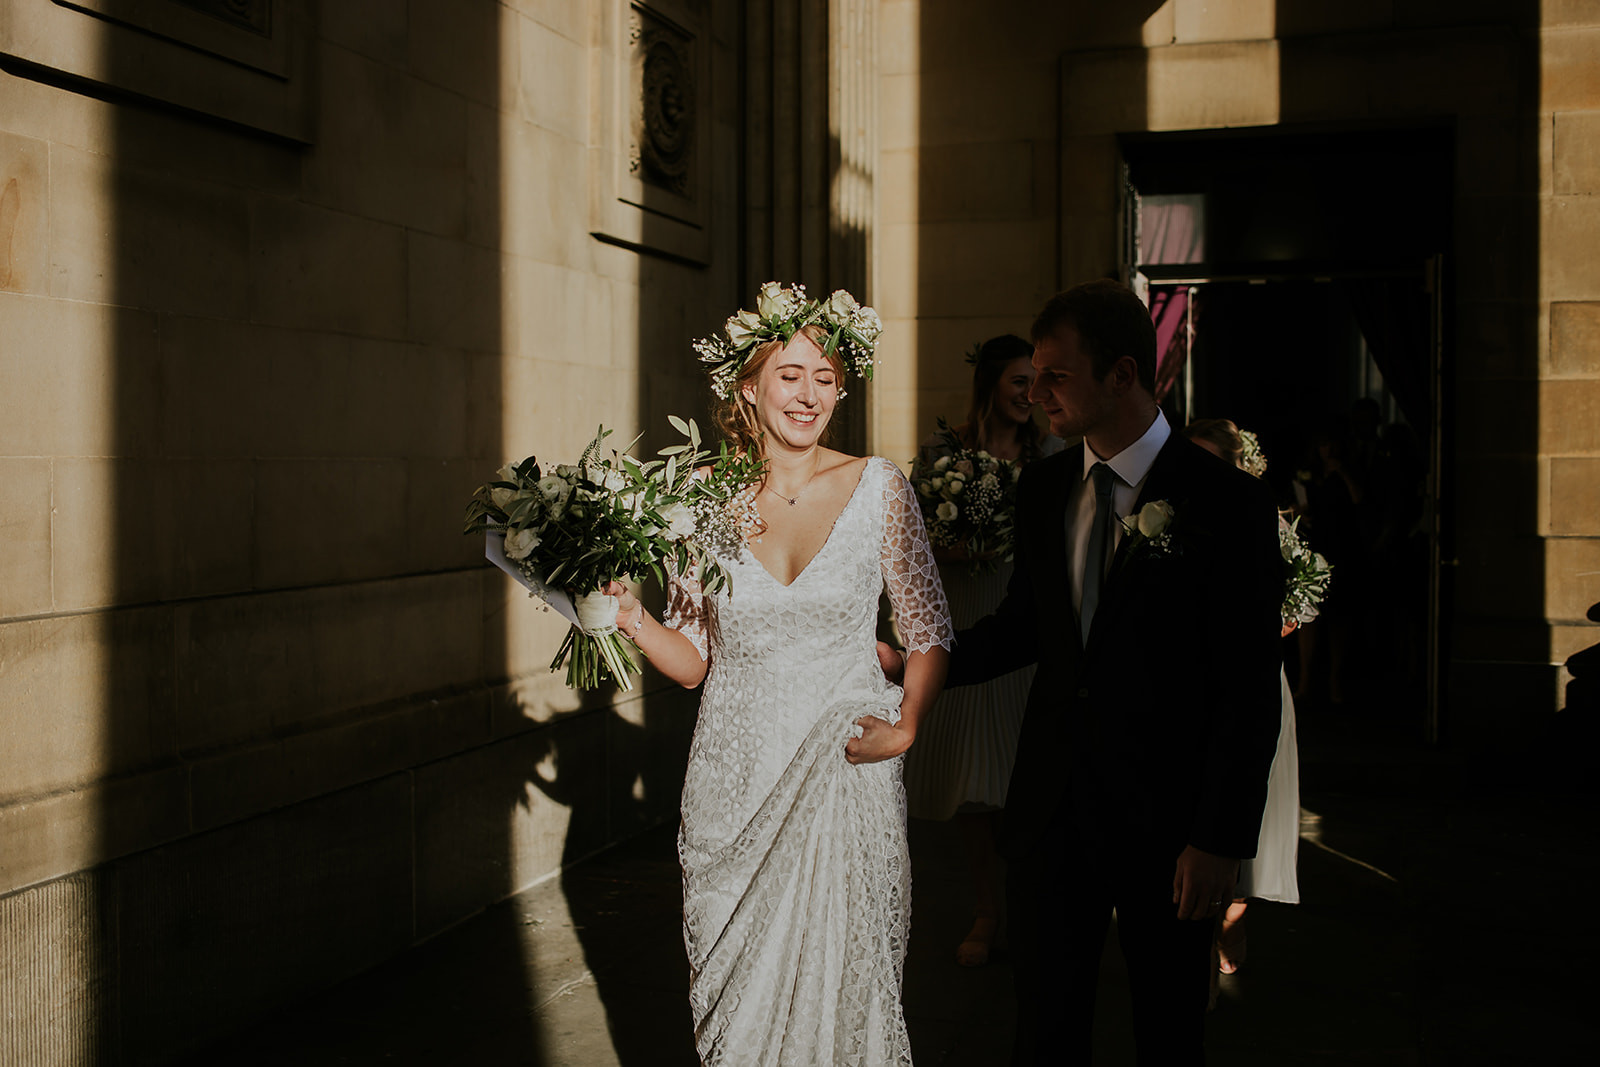 sun shining on the bride holding her flowers and wearing a flower crown